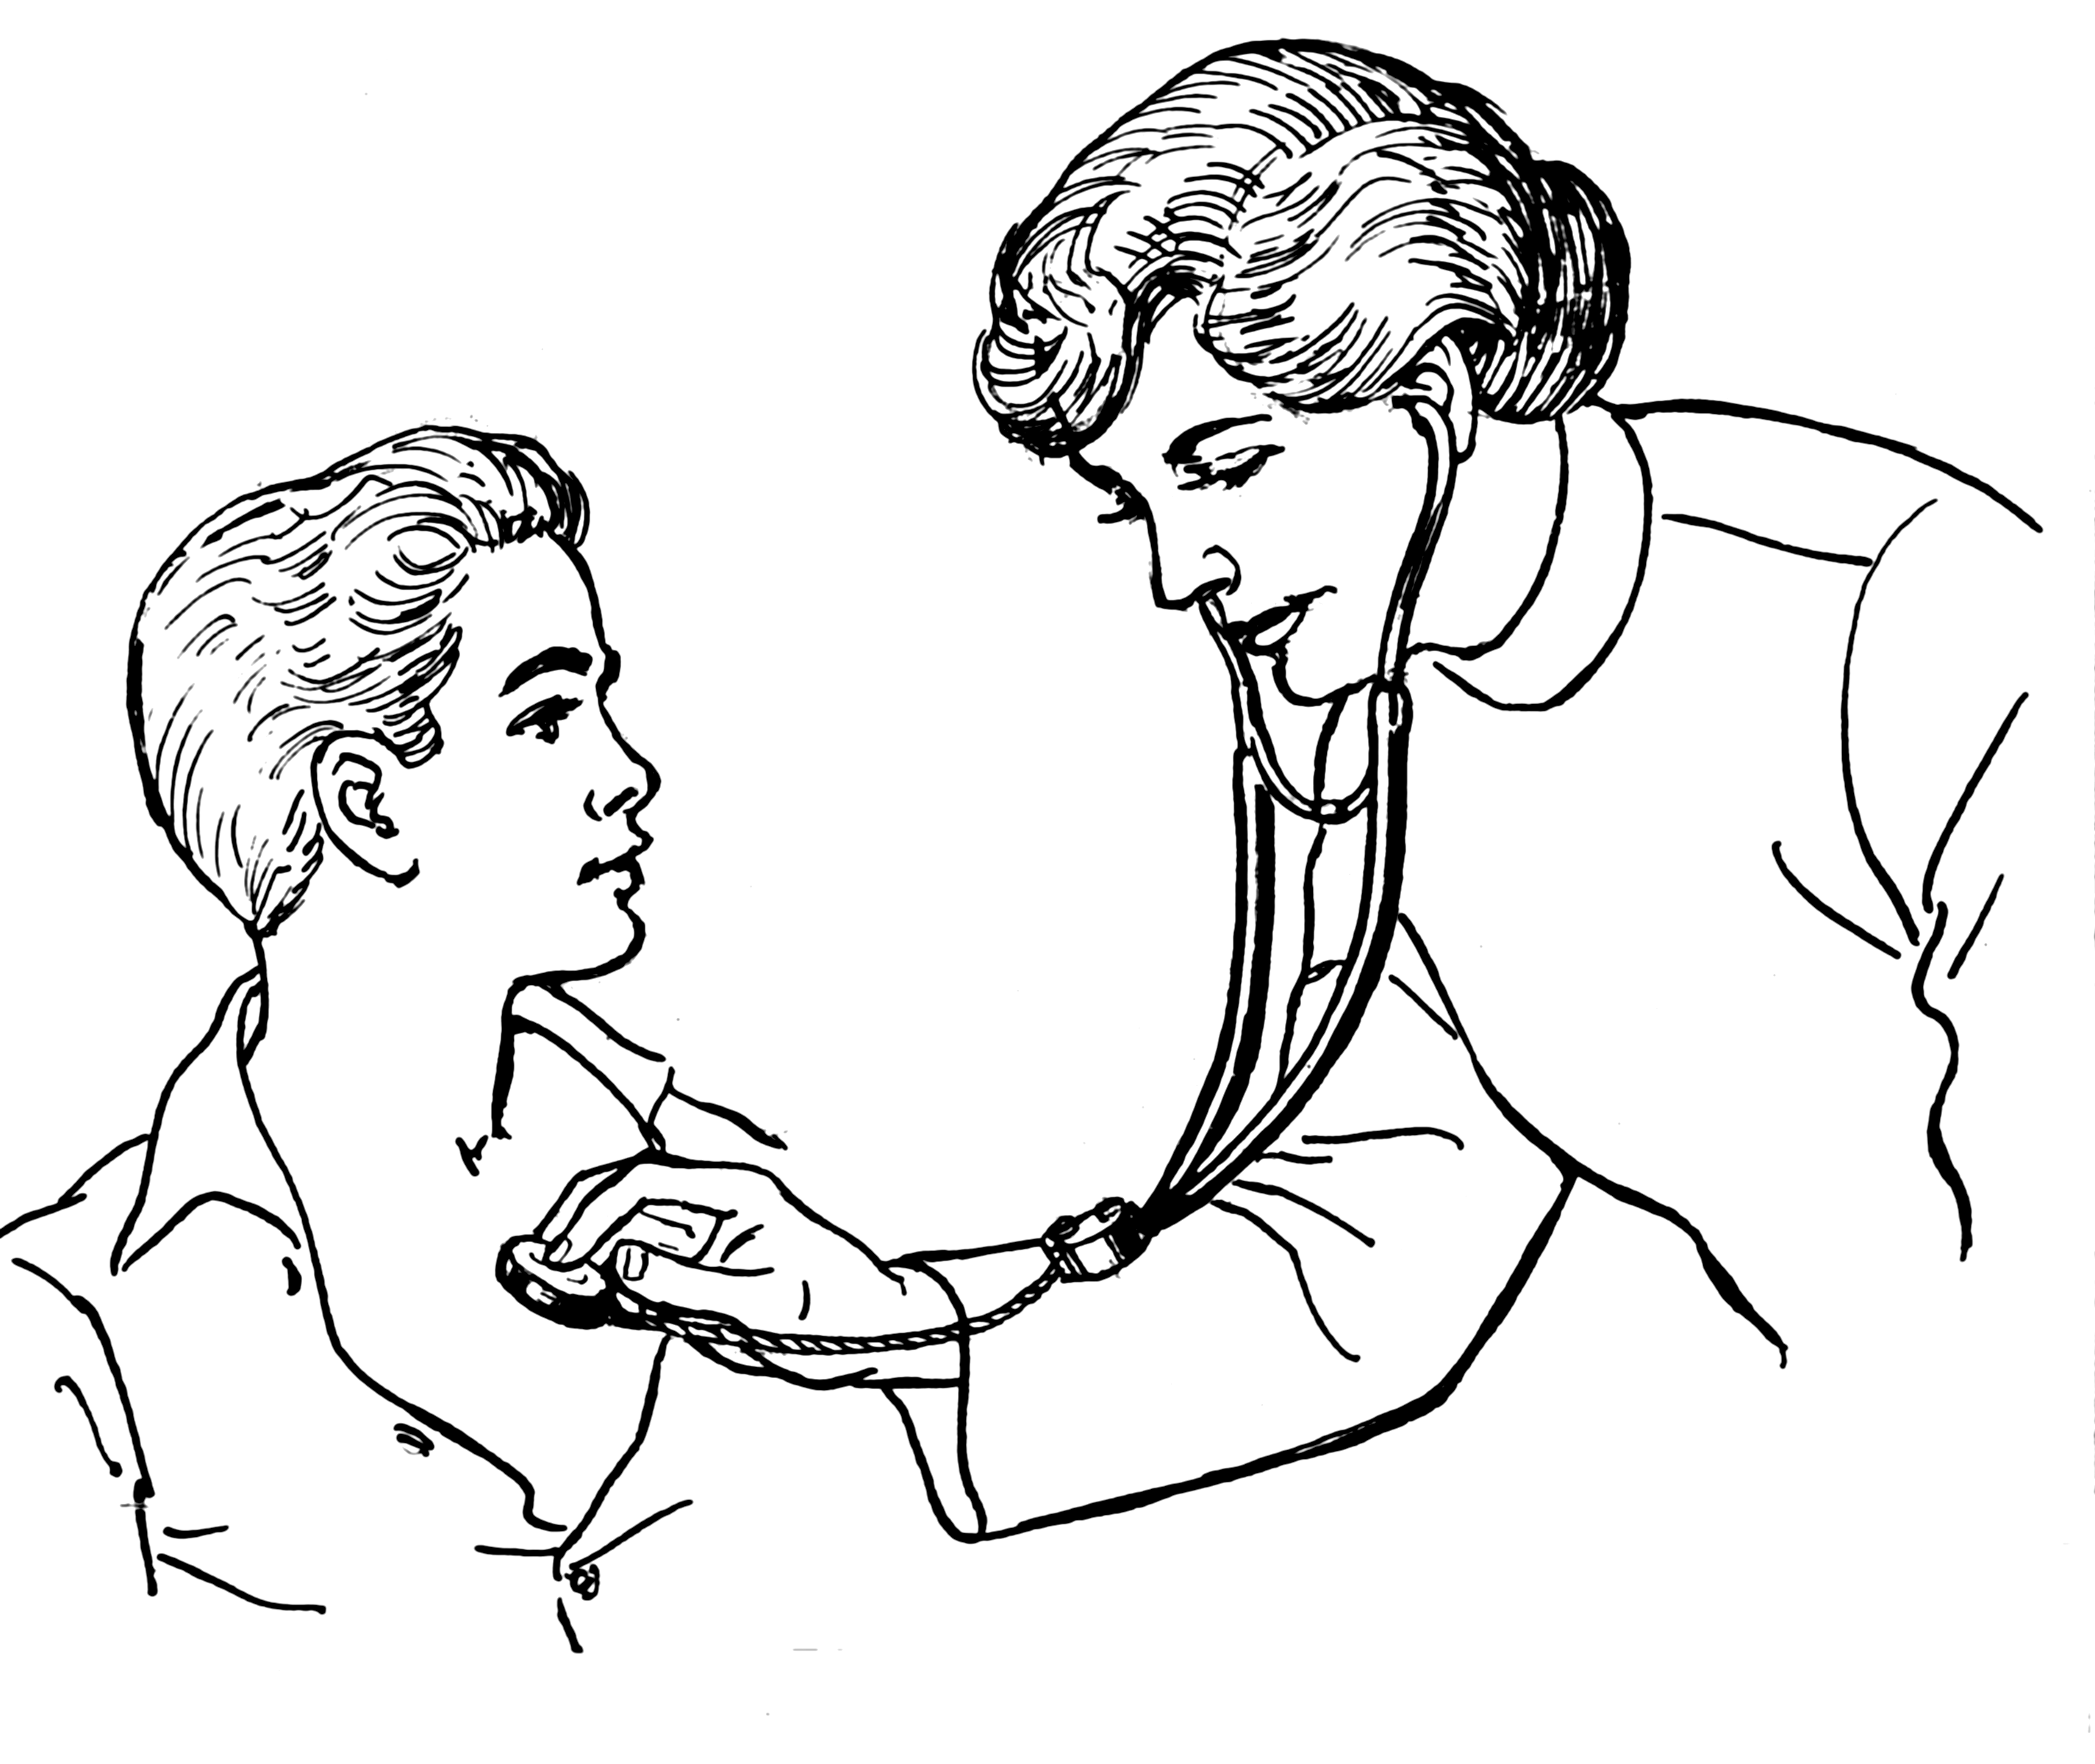 Line Drawing Of A Doctor : Archivo stethoscope psf wikipedia la enciclopedia